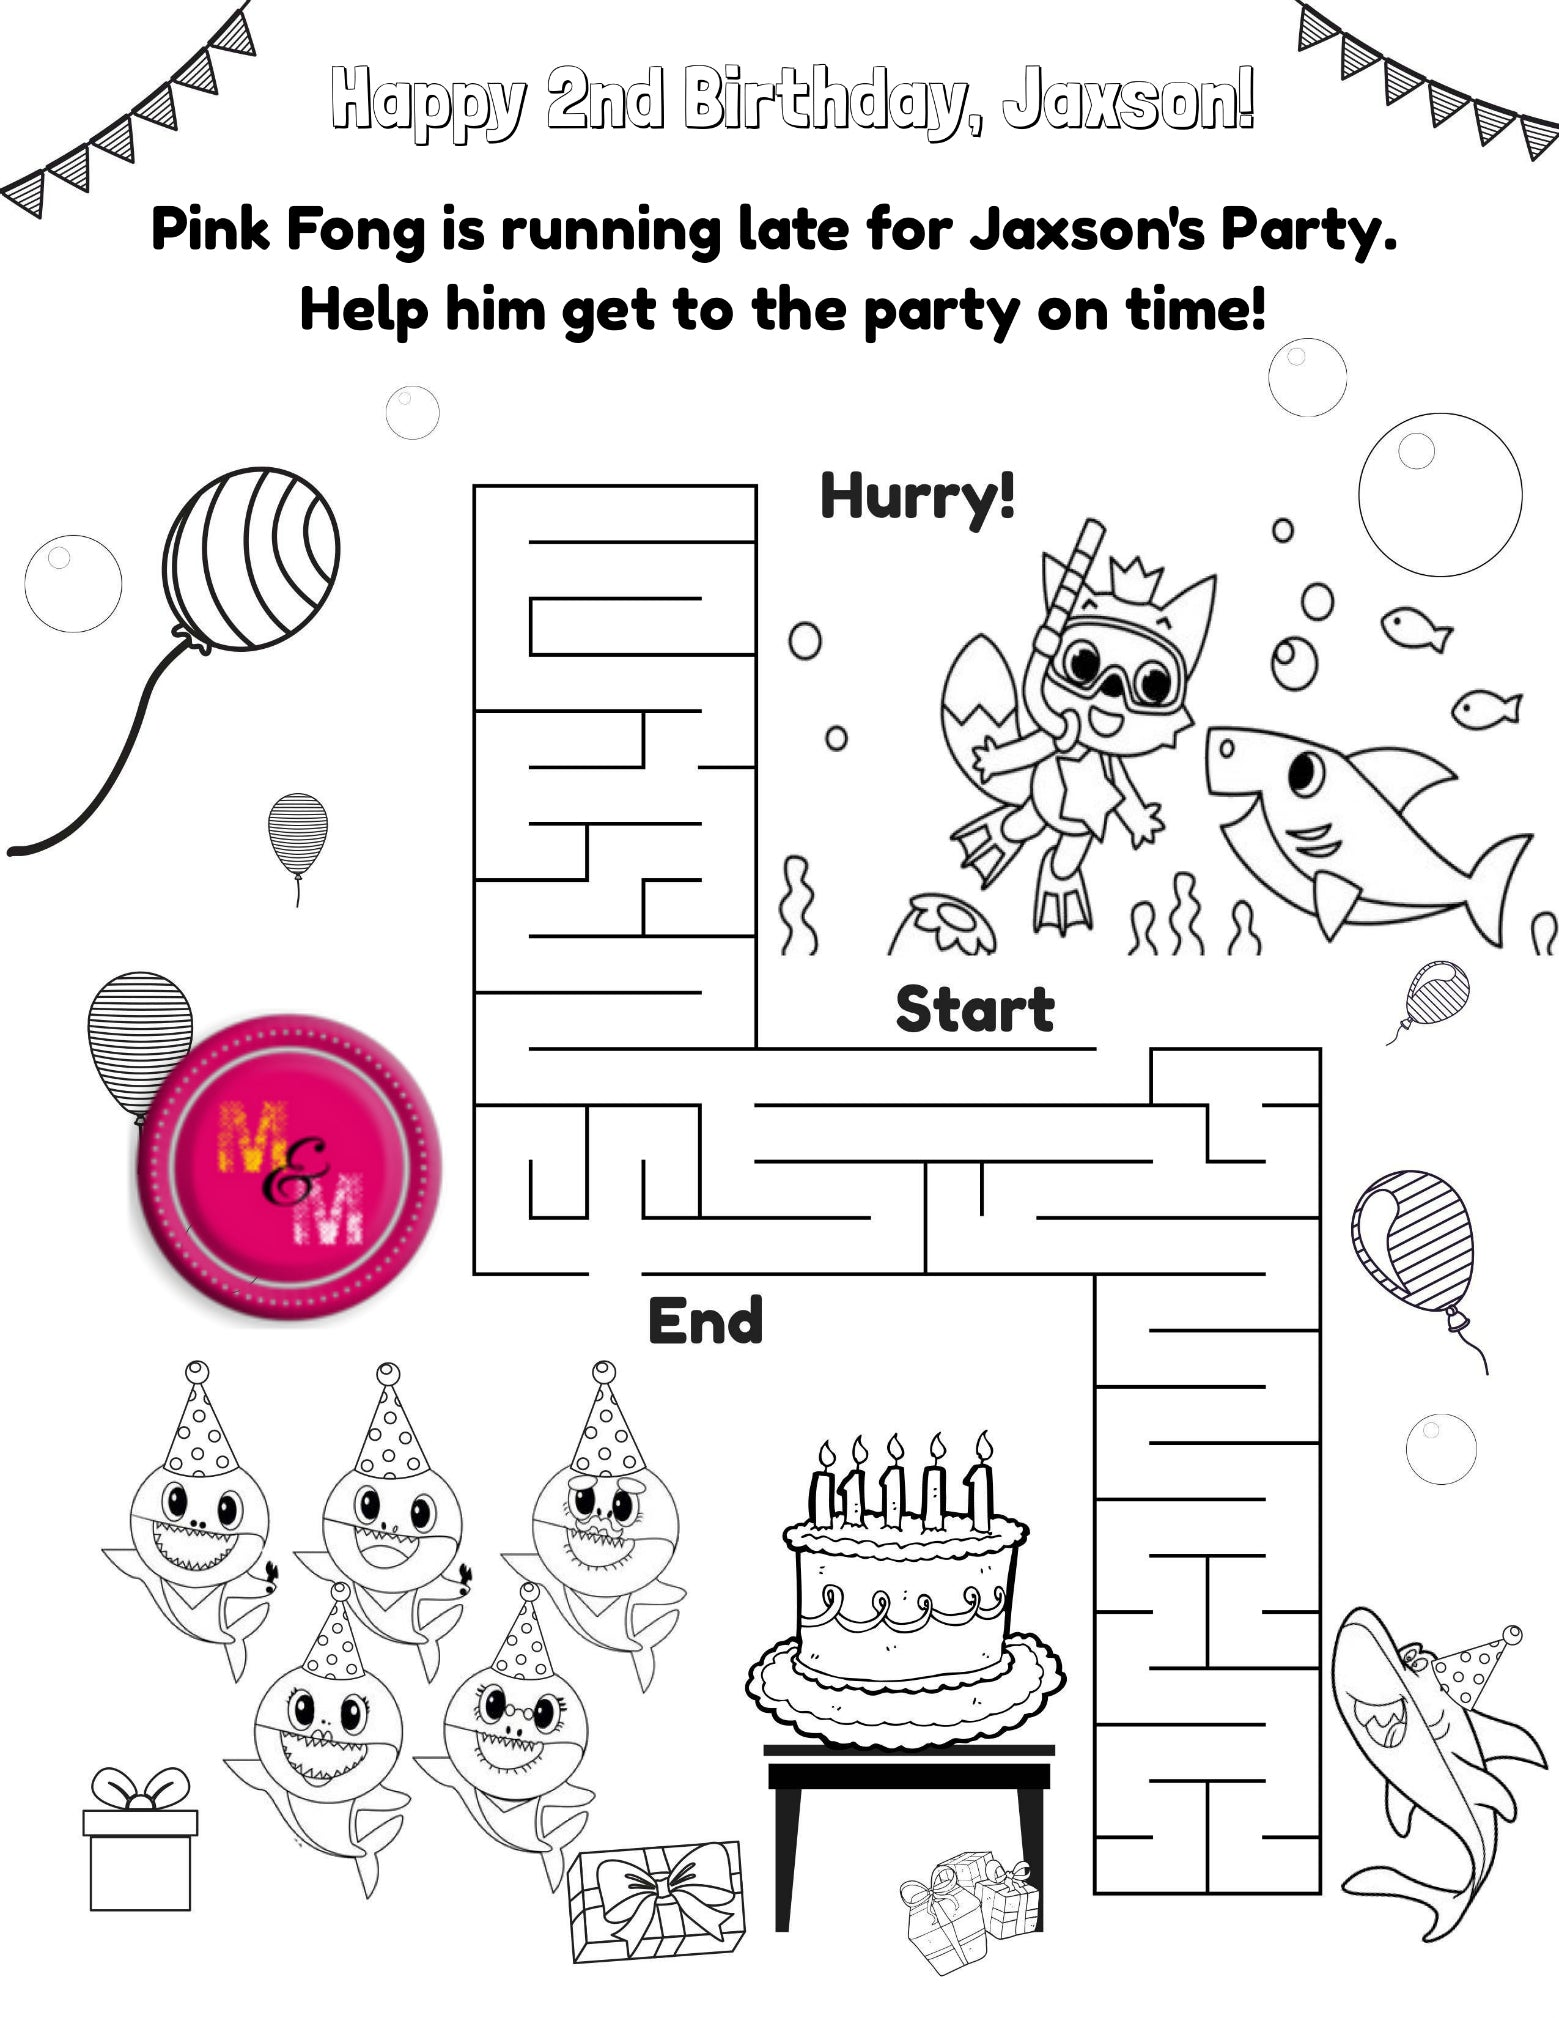 2nd Birthday Cake Coloring Pages | Birthday coloring pages, Happy 4th  birthday, Happy birthday cards printable | 2018x1559